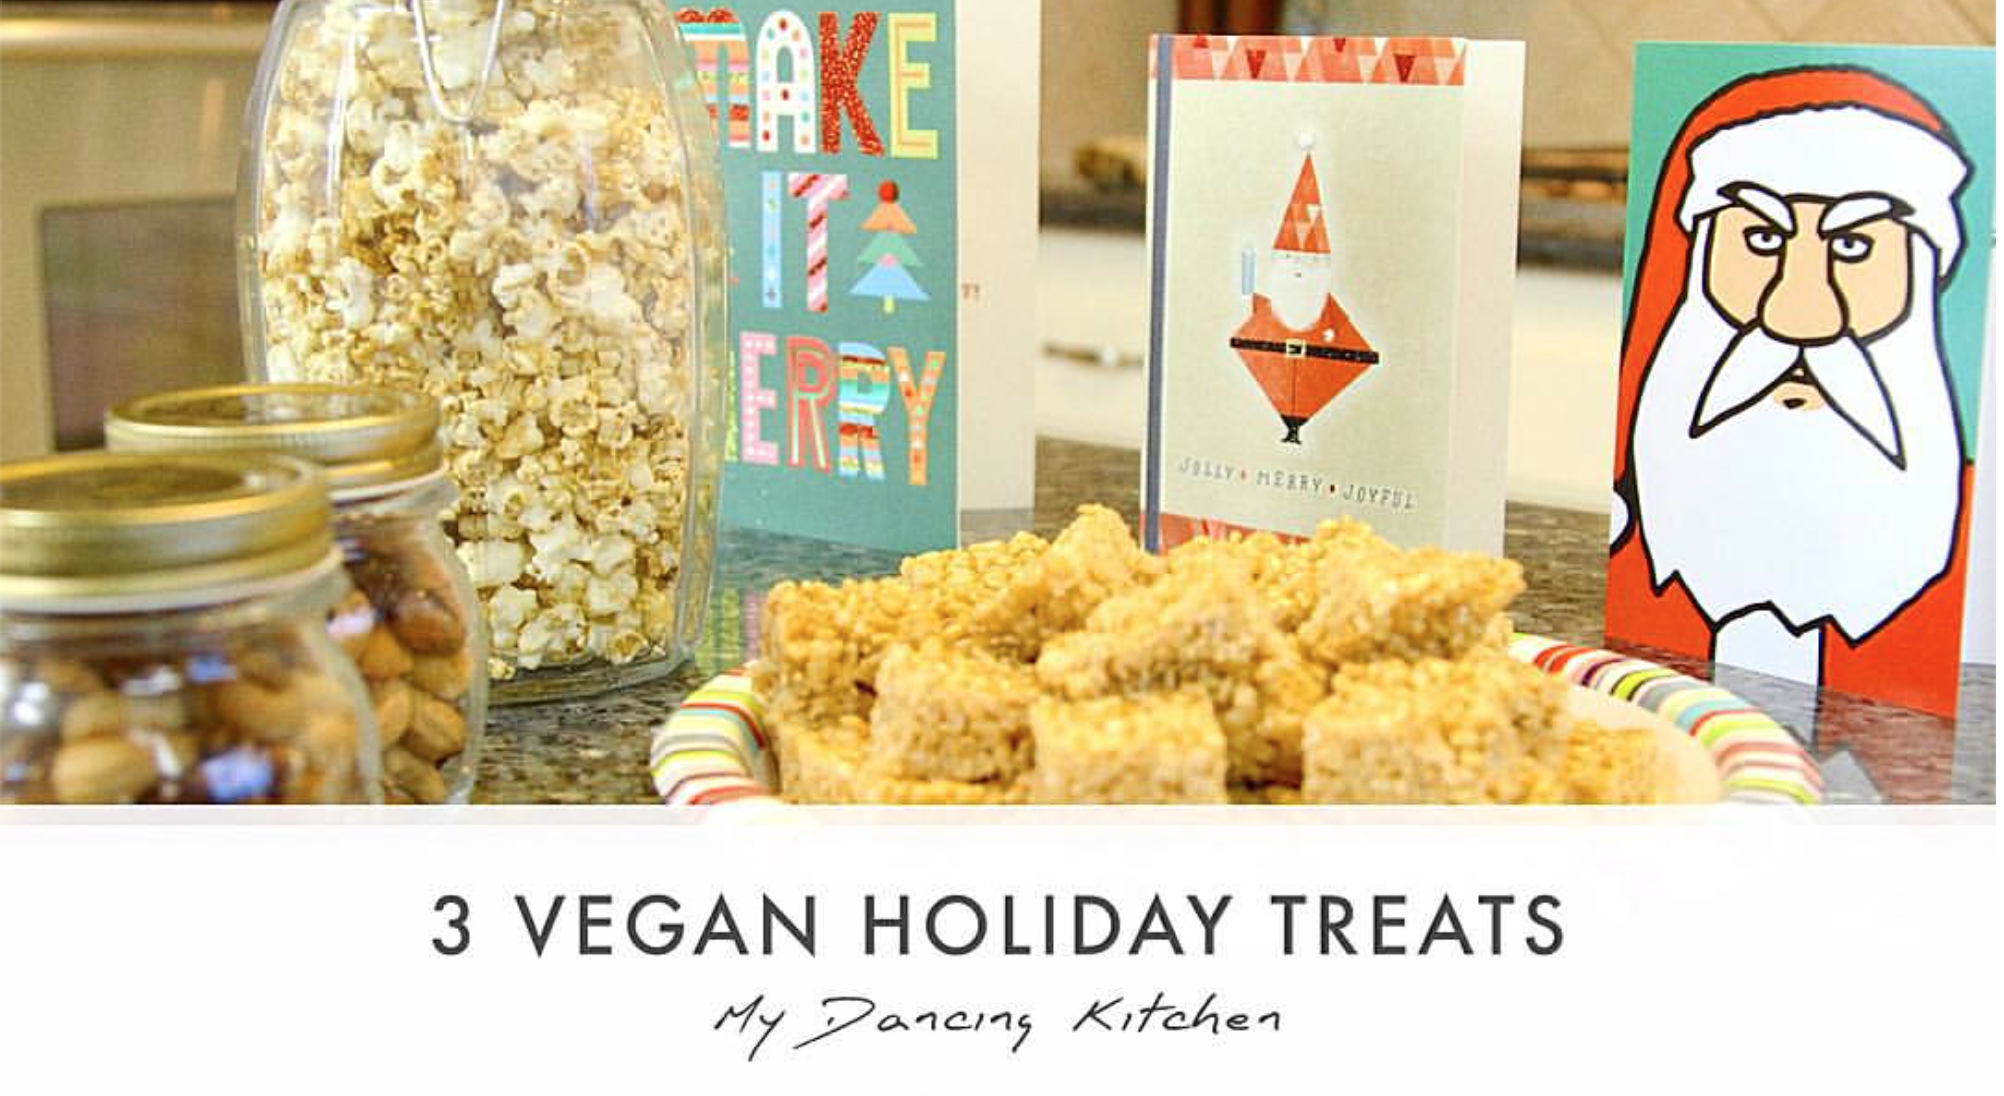 3 vegan holiday treats